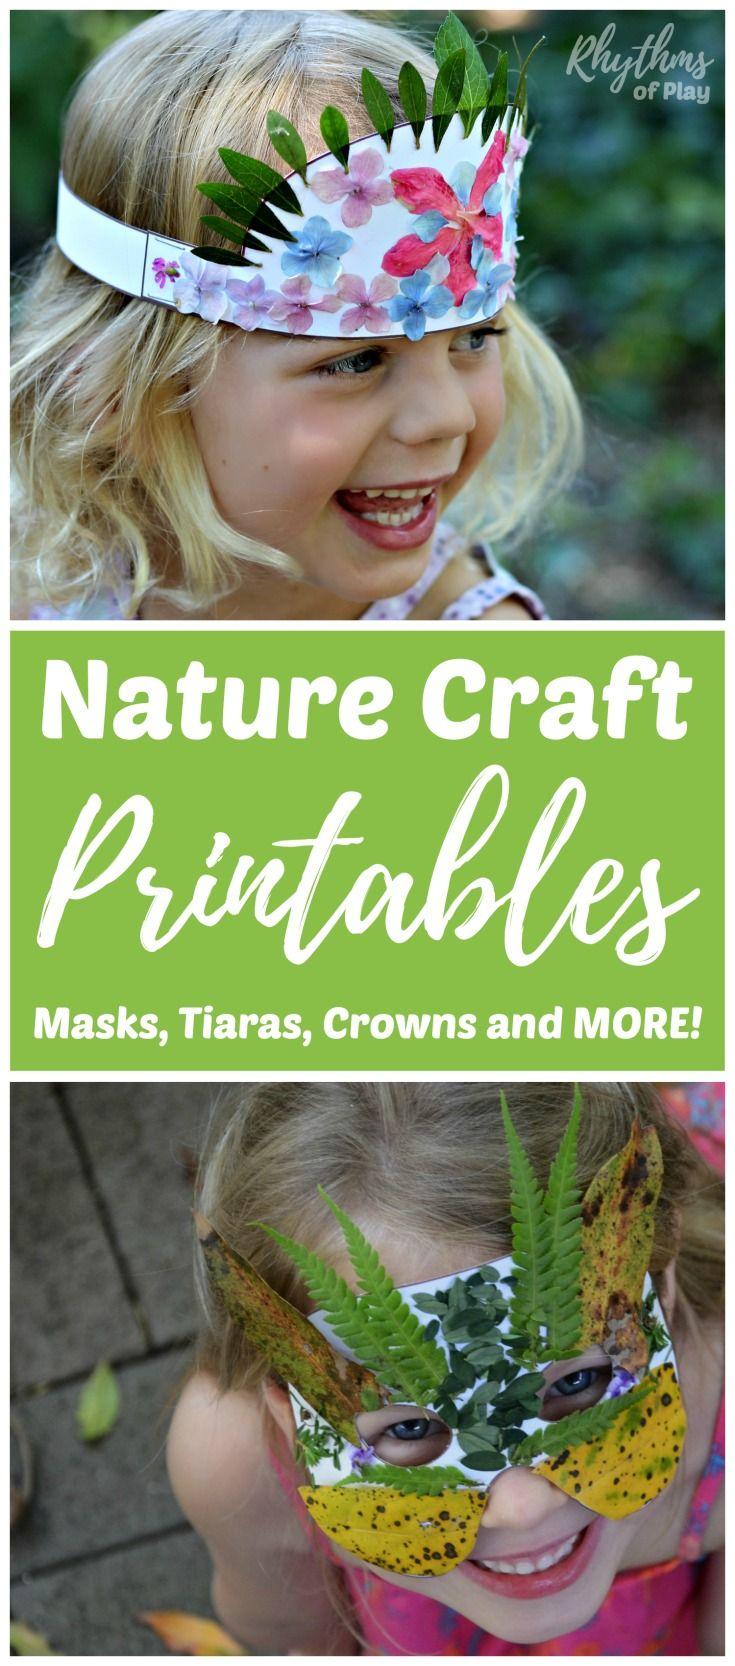 498 best Free Printables for Kids images on Pinterest | Free ...